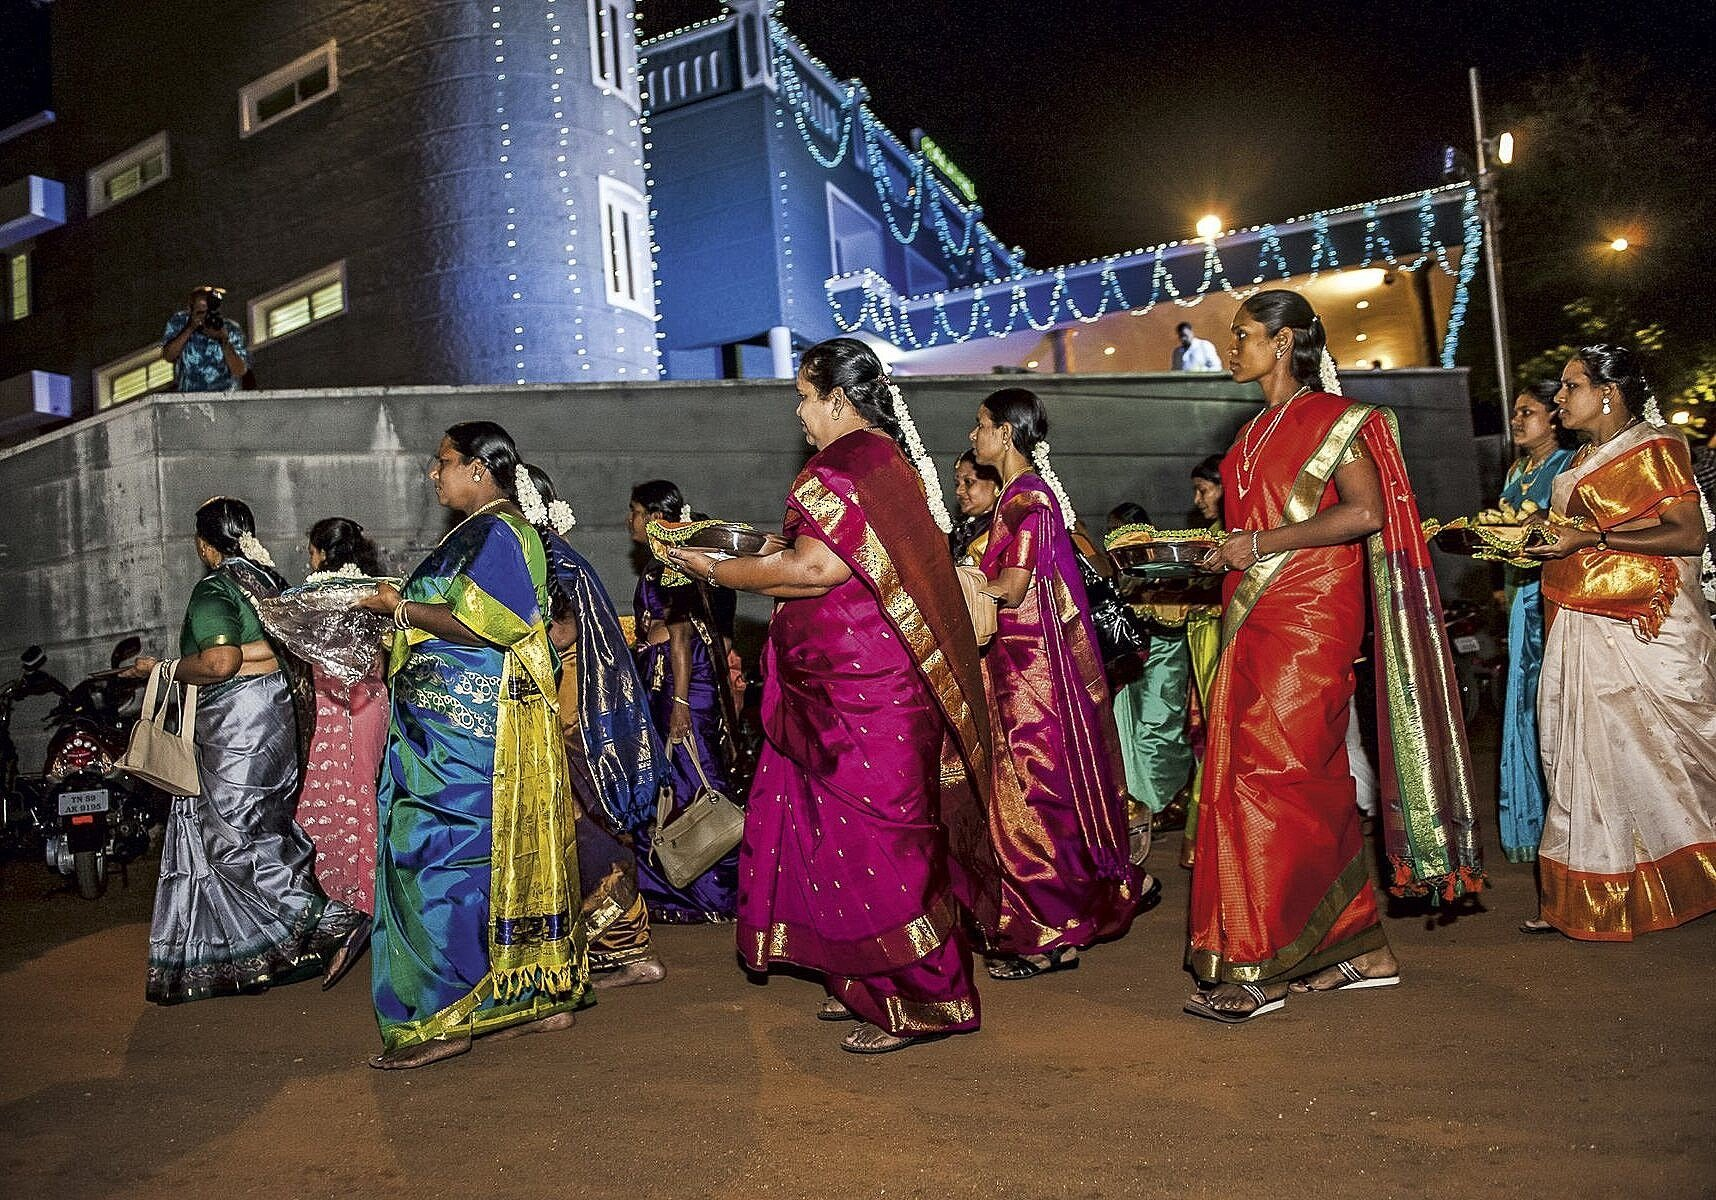 Women from the bridegroom's family bring gifts for the bride as part of the betrothal ceremony before a south Indian wedding at the holy city of Madurai. Tamil Nadu, 2009